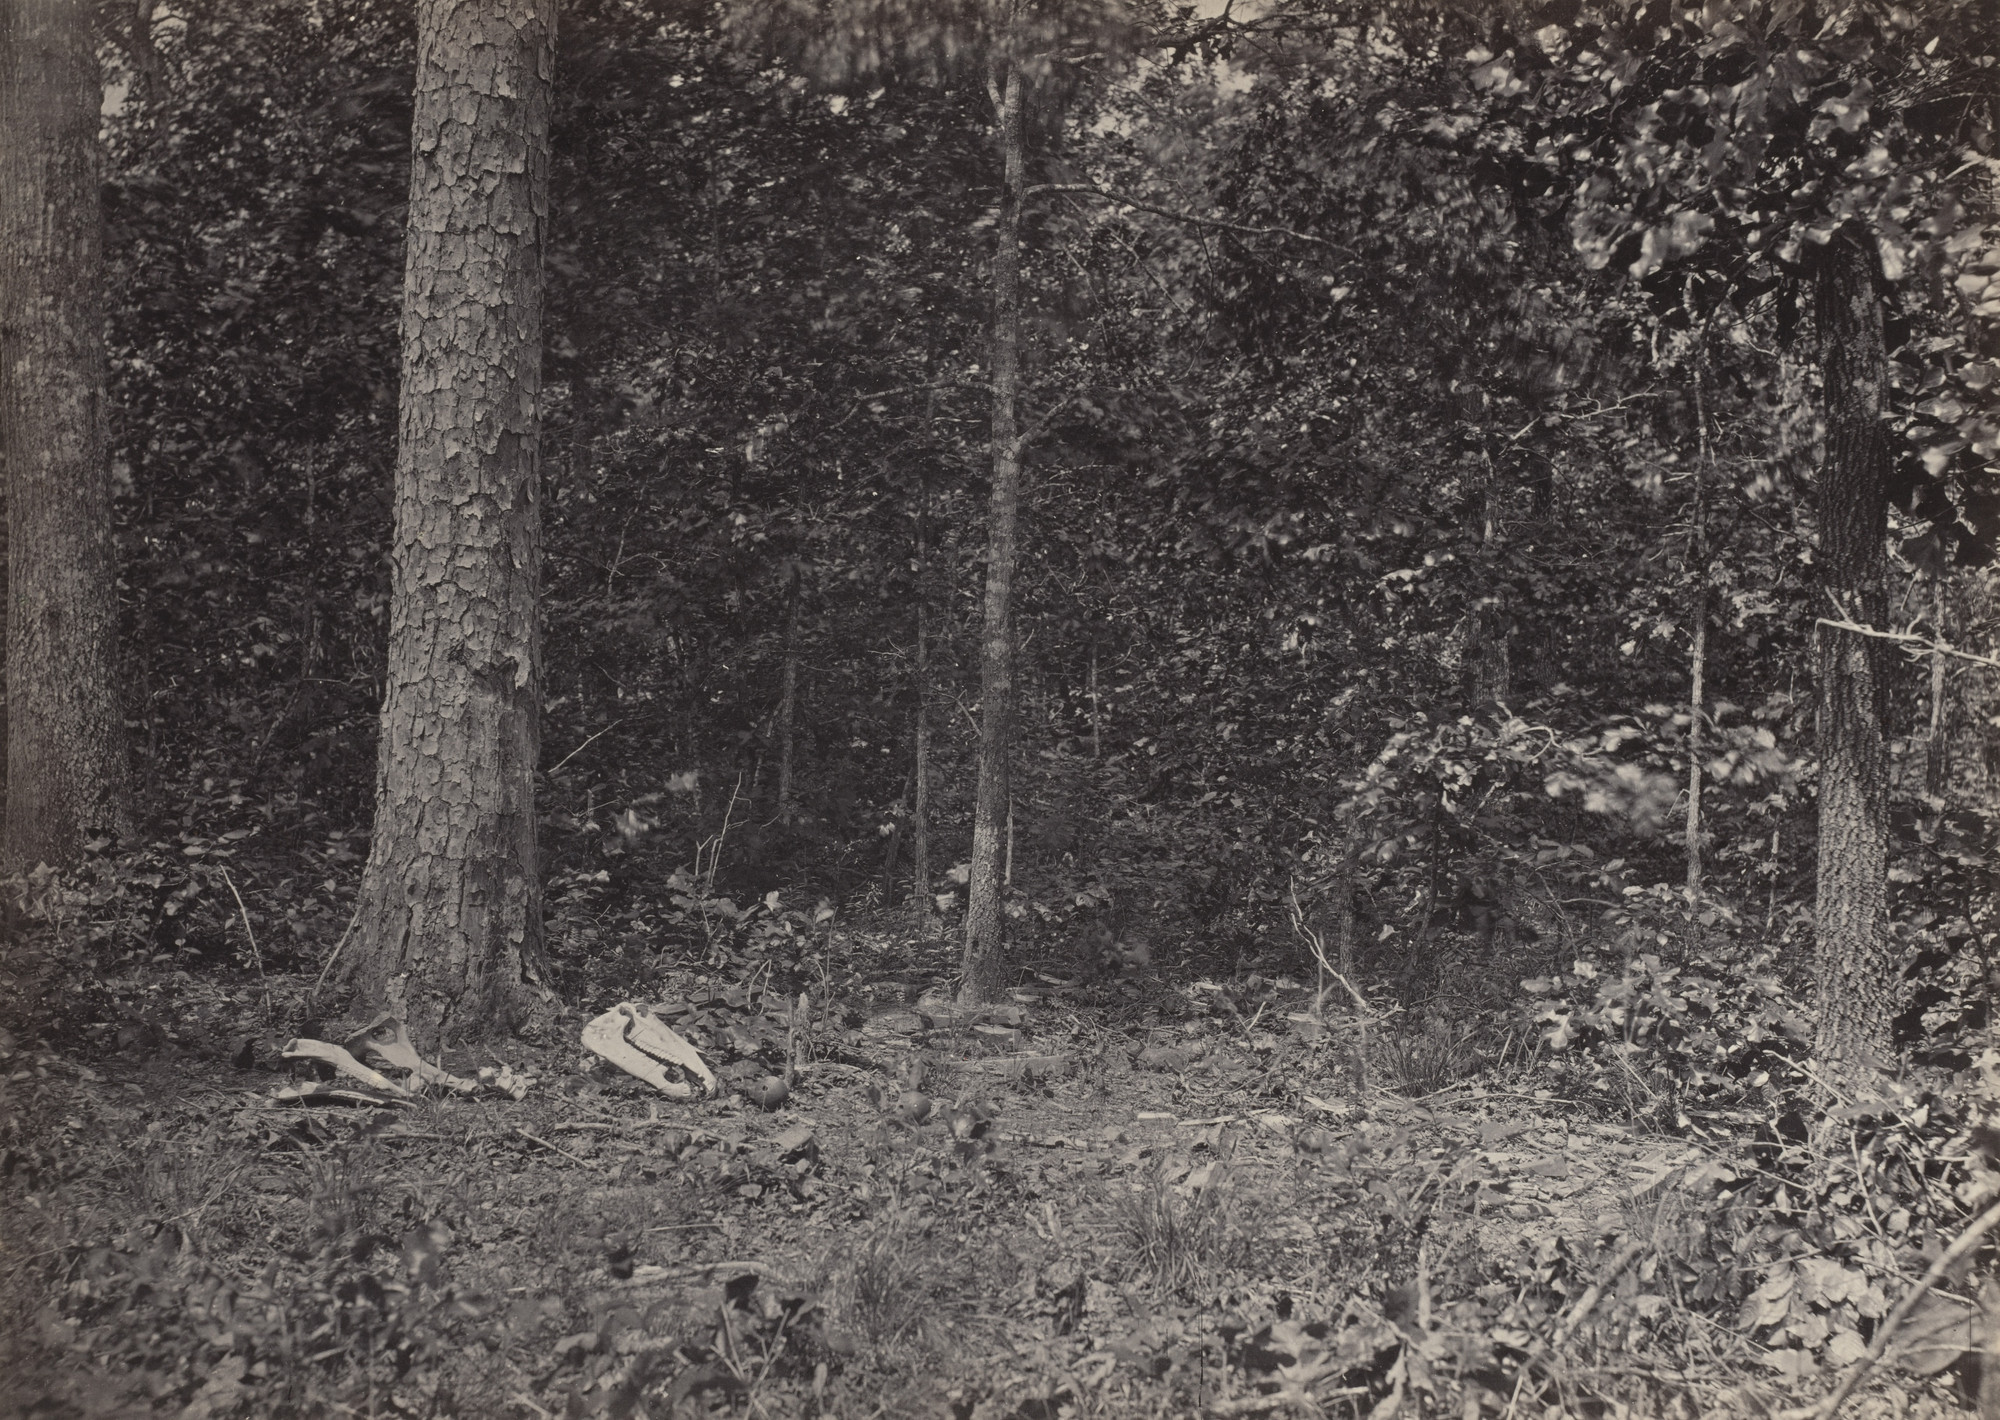 George Barnard. Scene of General McPherson's Death from the album Photographic Views of Sherman's Campaign. 1864-65